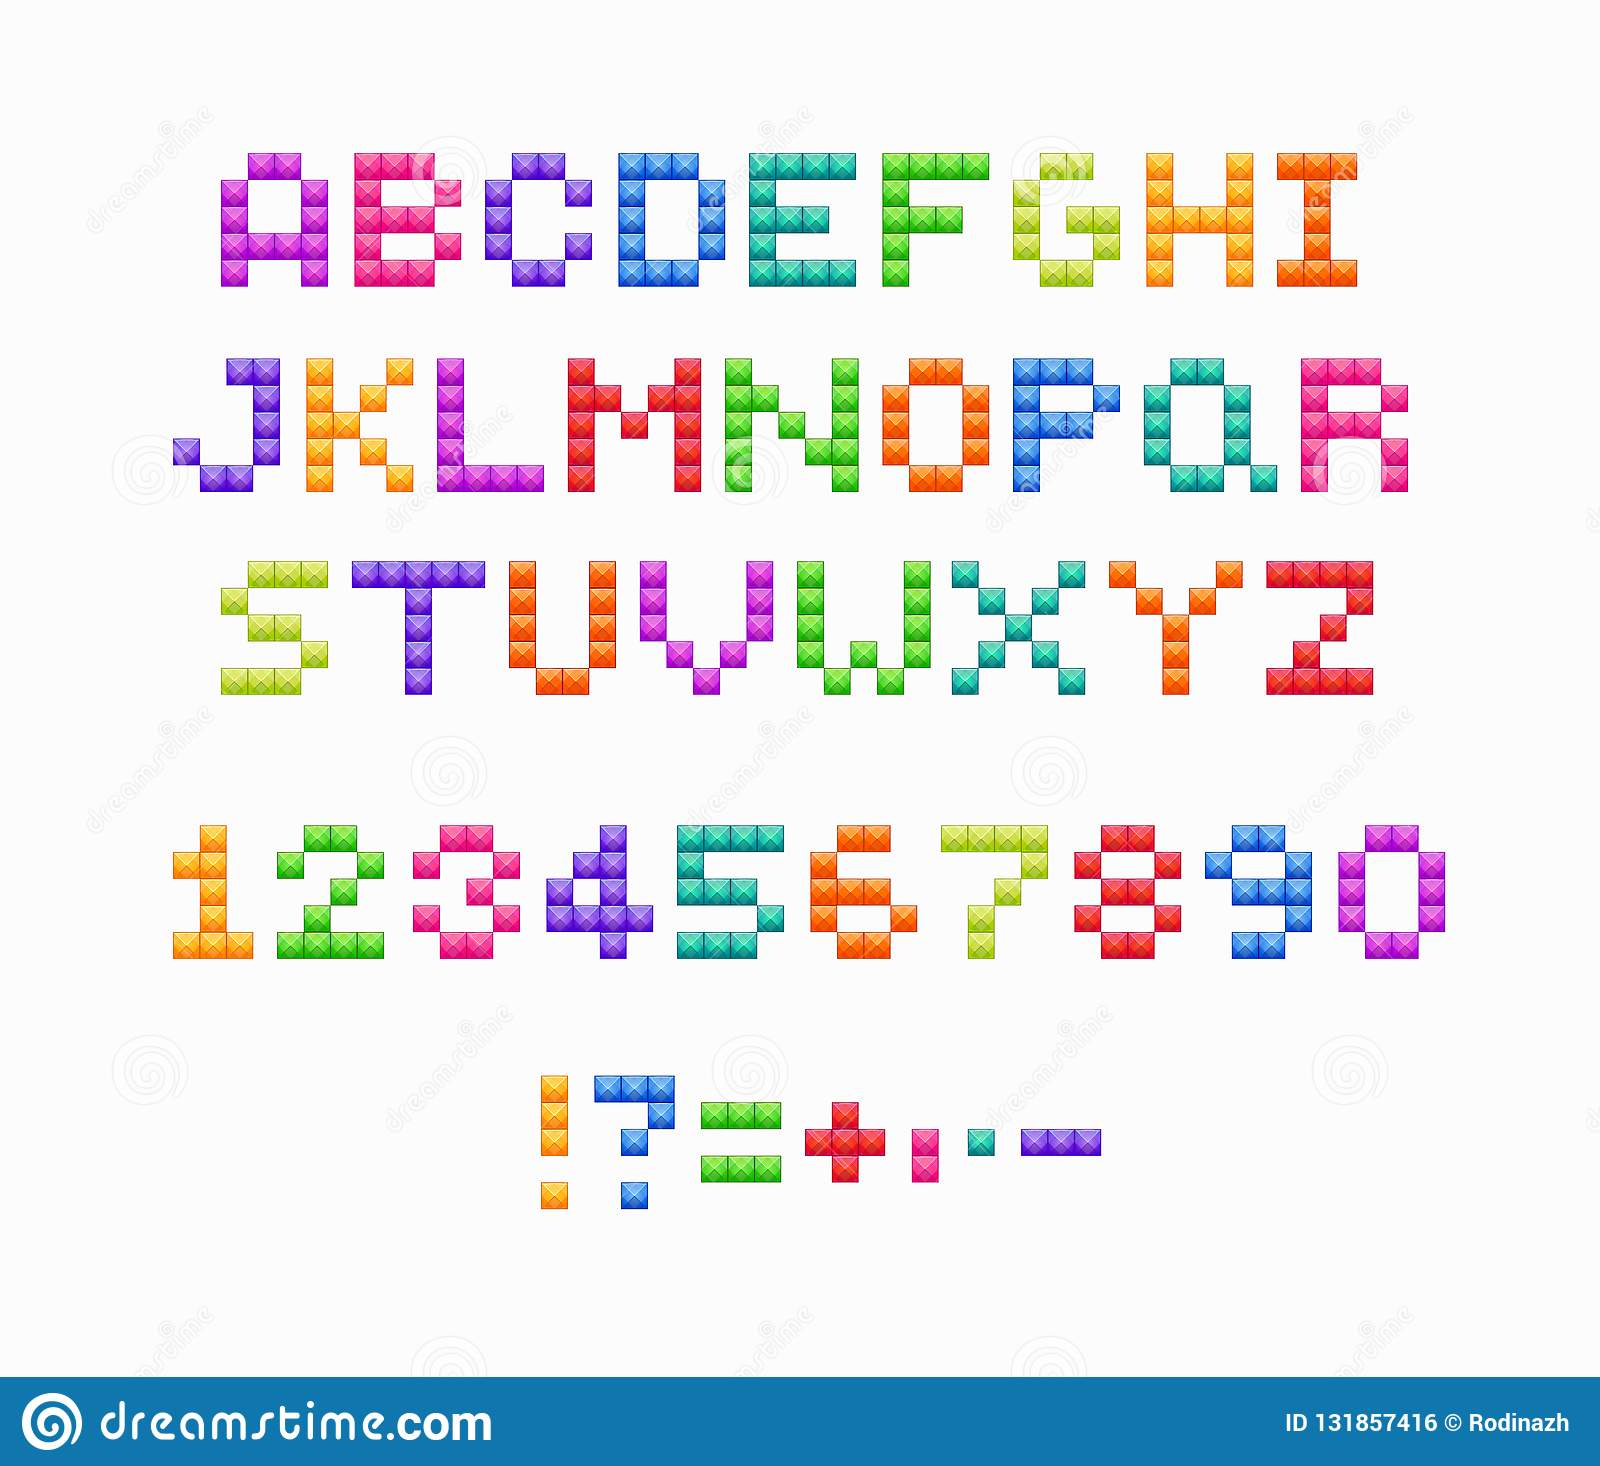 Crystal Pixel Font, Retro Video Game Design. Vector